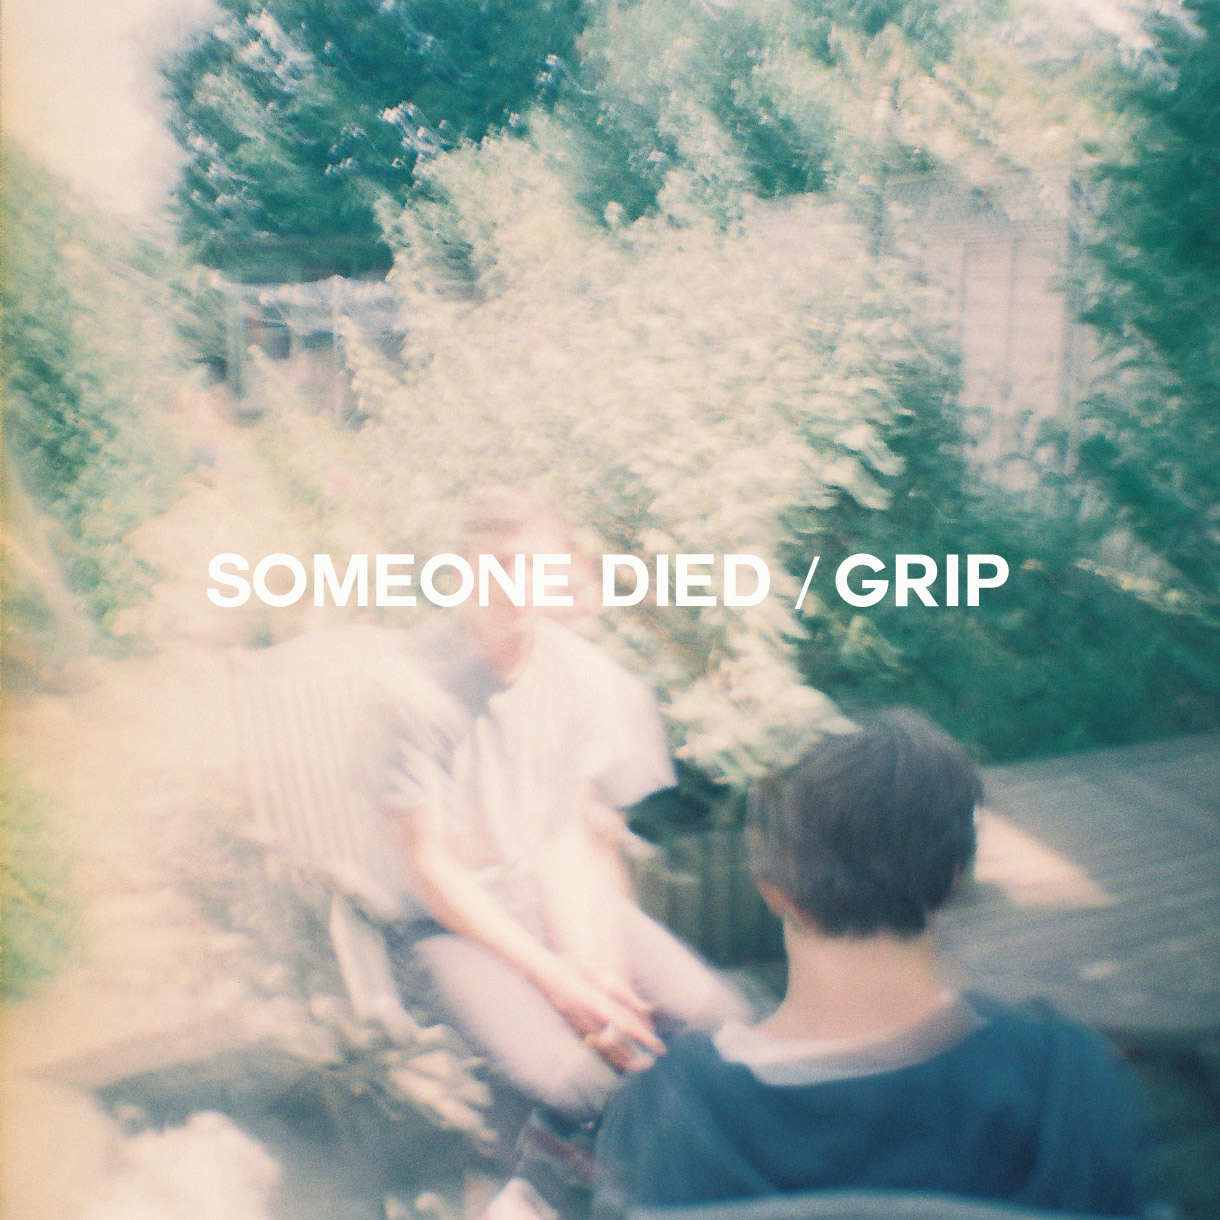 http://someonedied.bandcamp.com